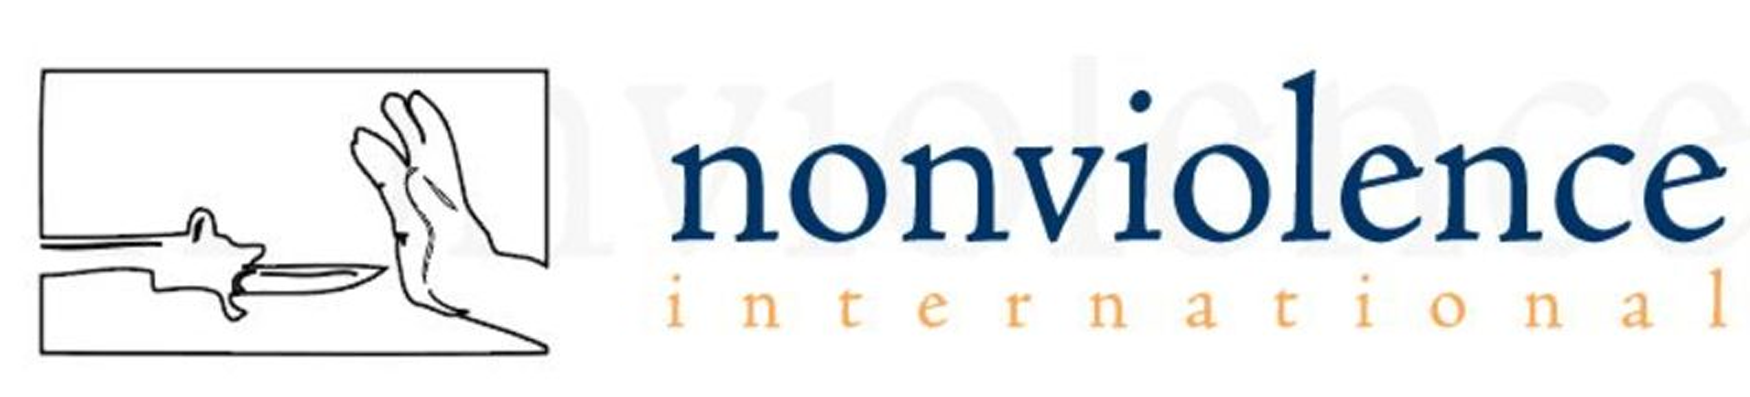 Nonviolence international logo